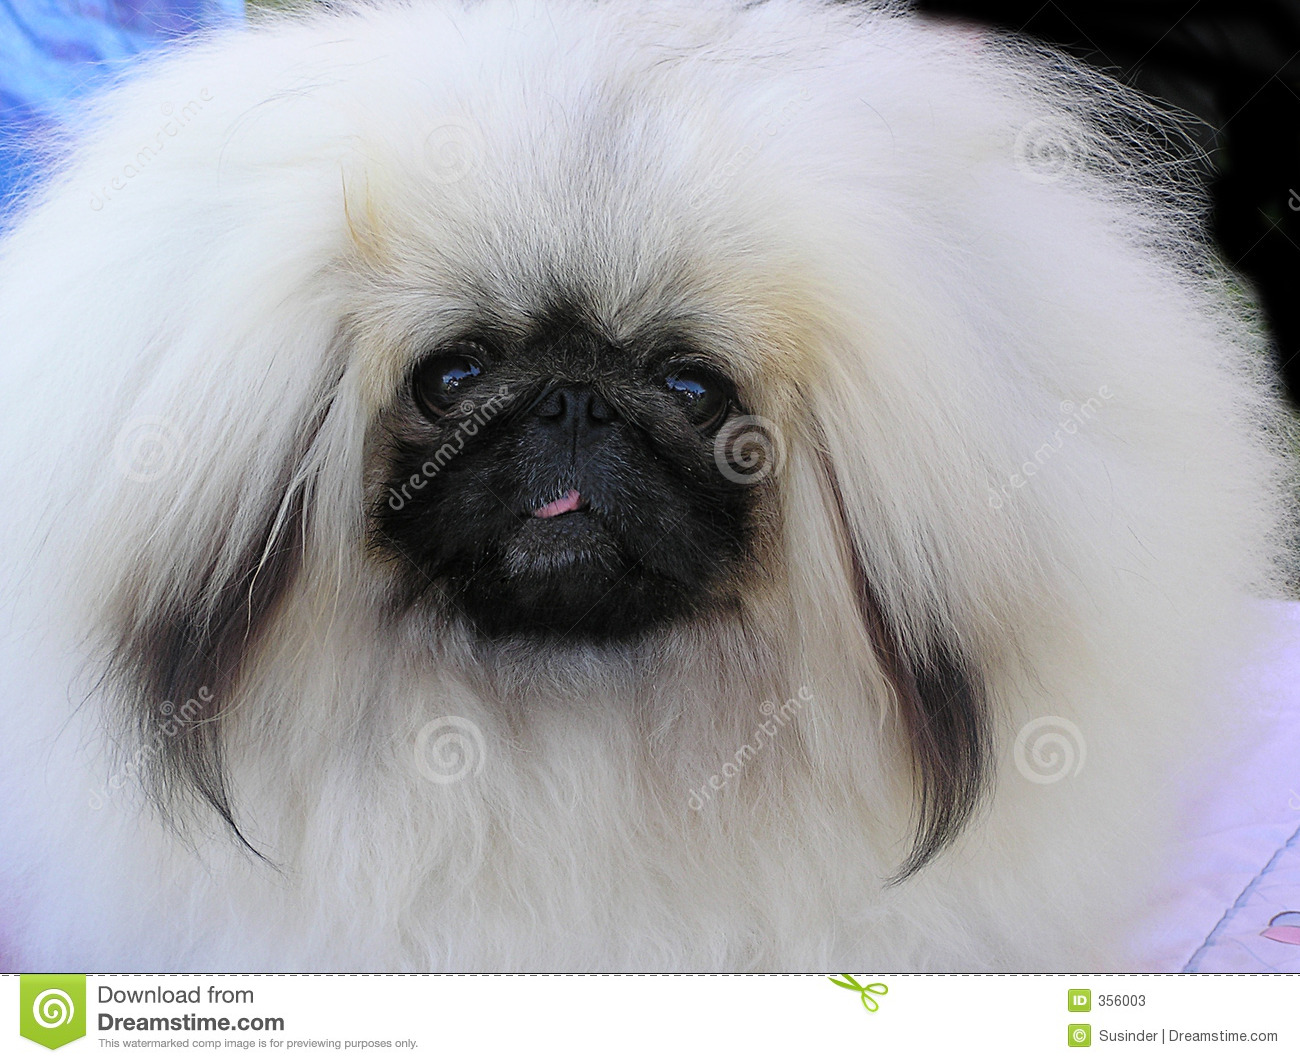 Don't know the breed ... photographed this cute dog at a dog show.